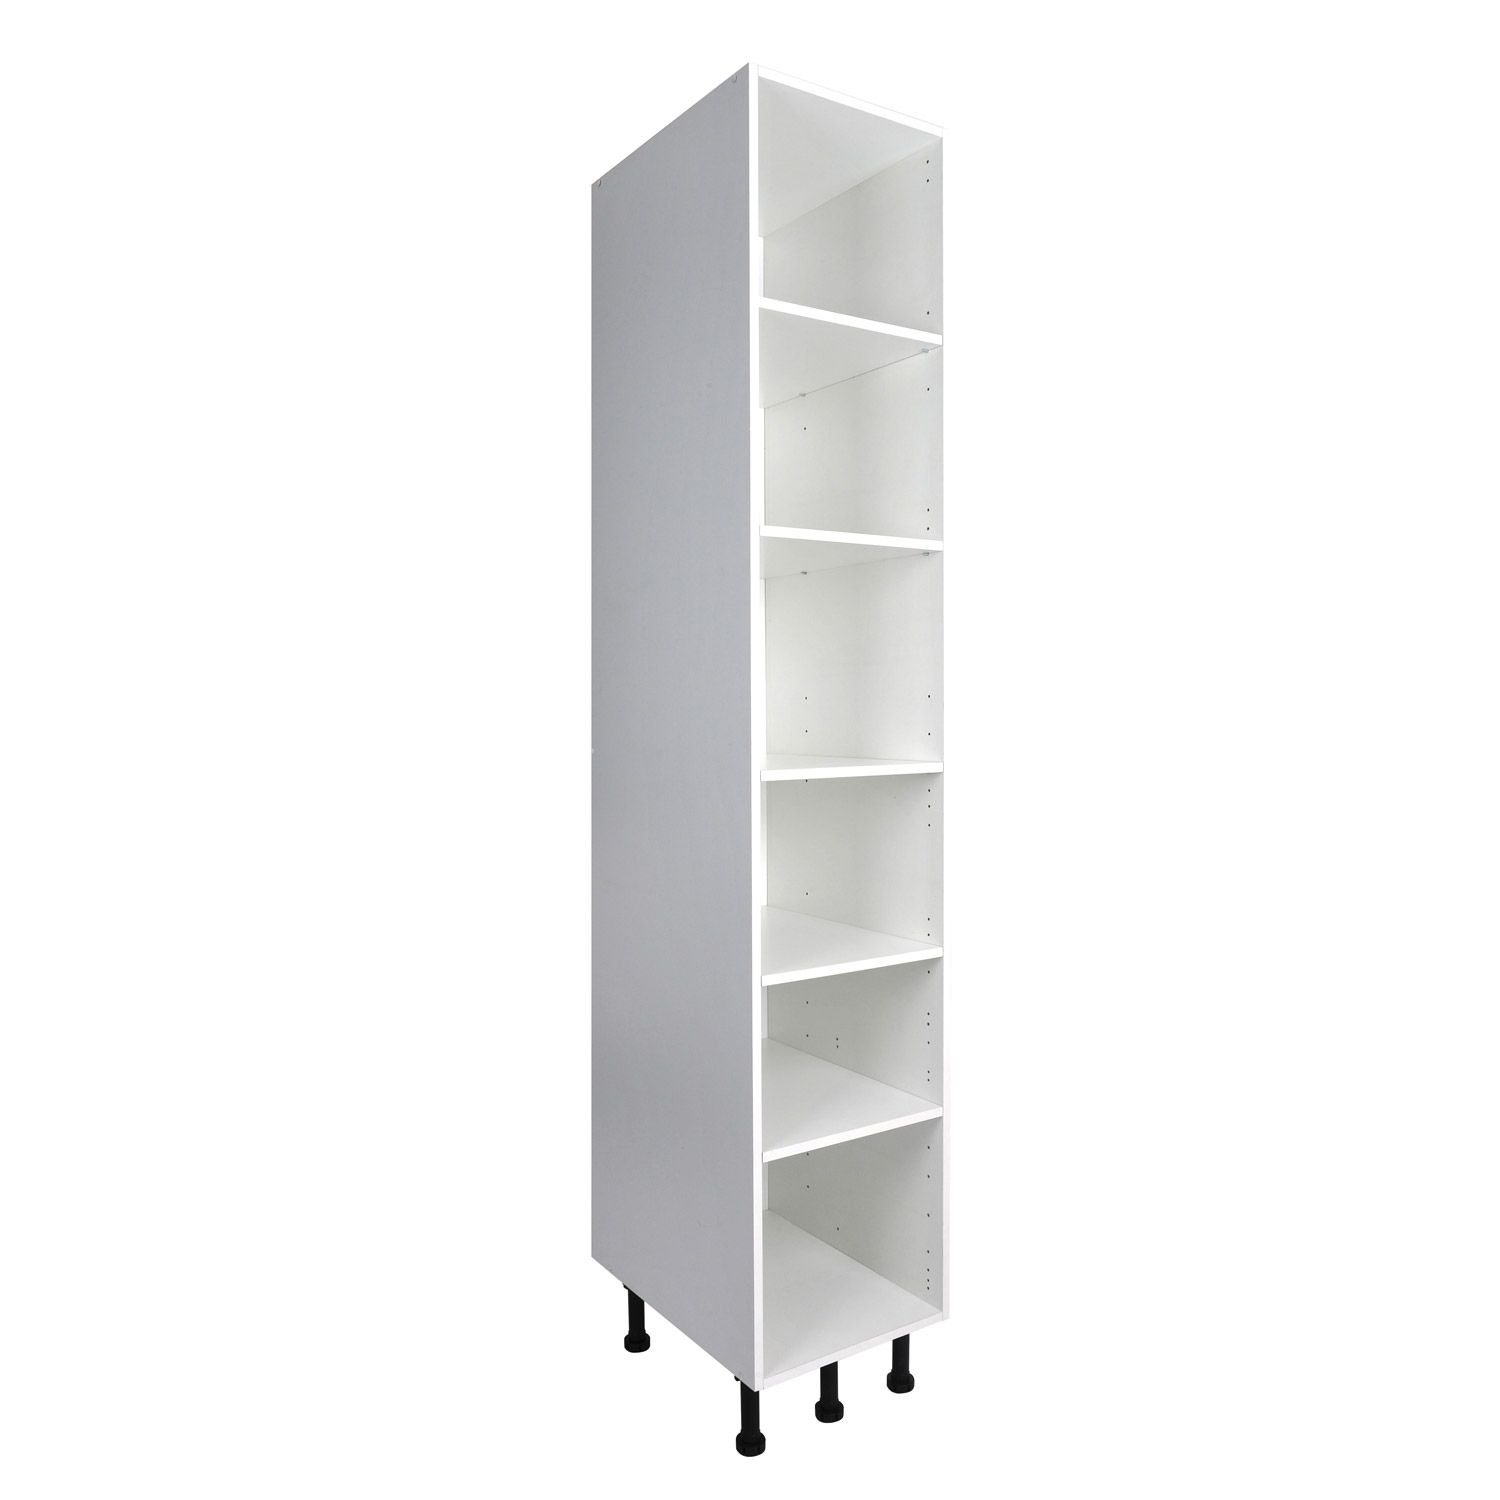 caisson de cuisine colonne c40 200 delinia blanc l40 x. Black Bedroom Furniture Sets. Home Design Ideas